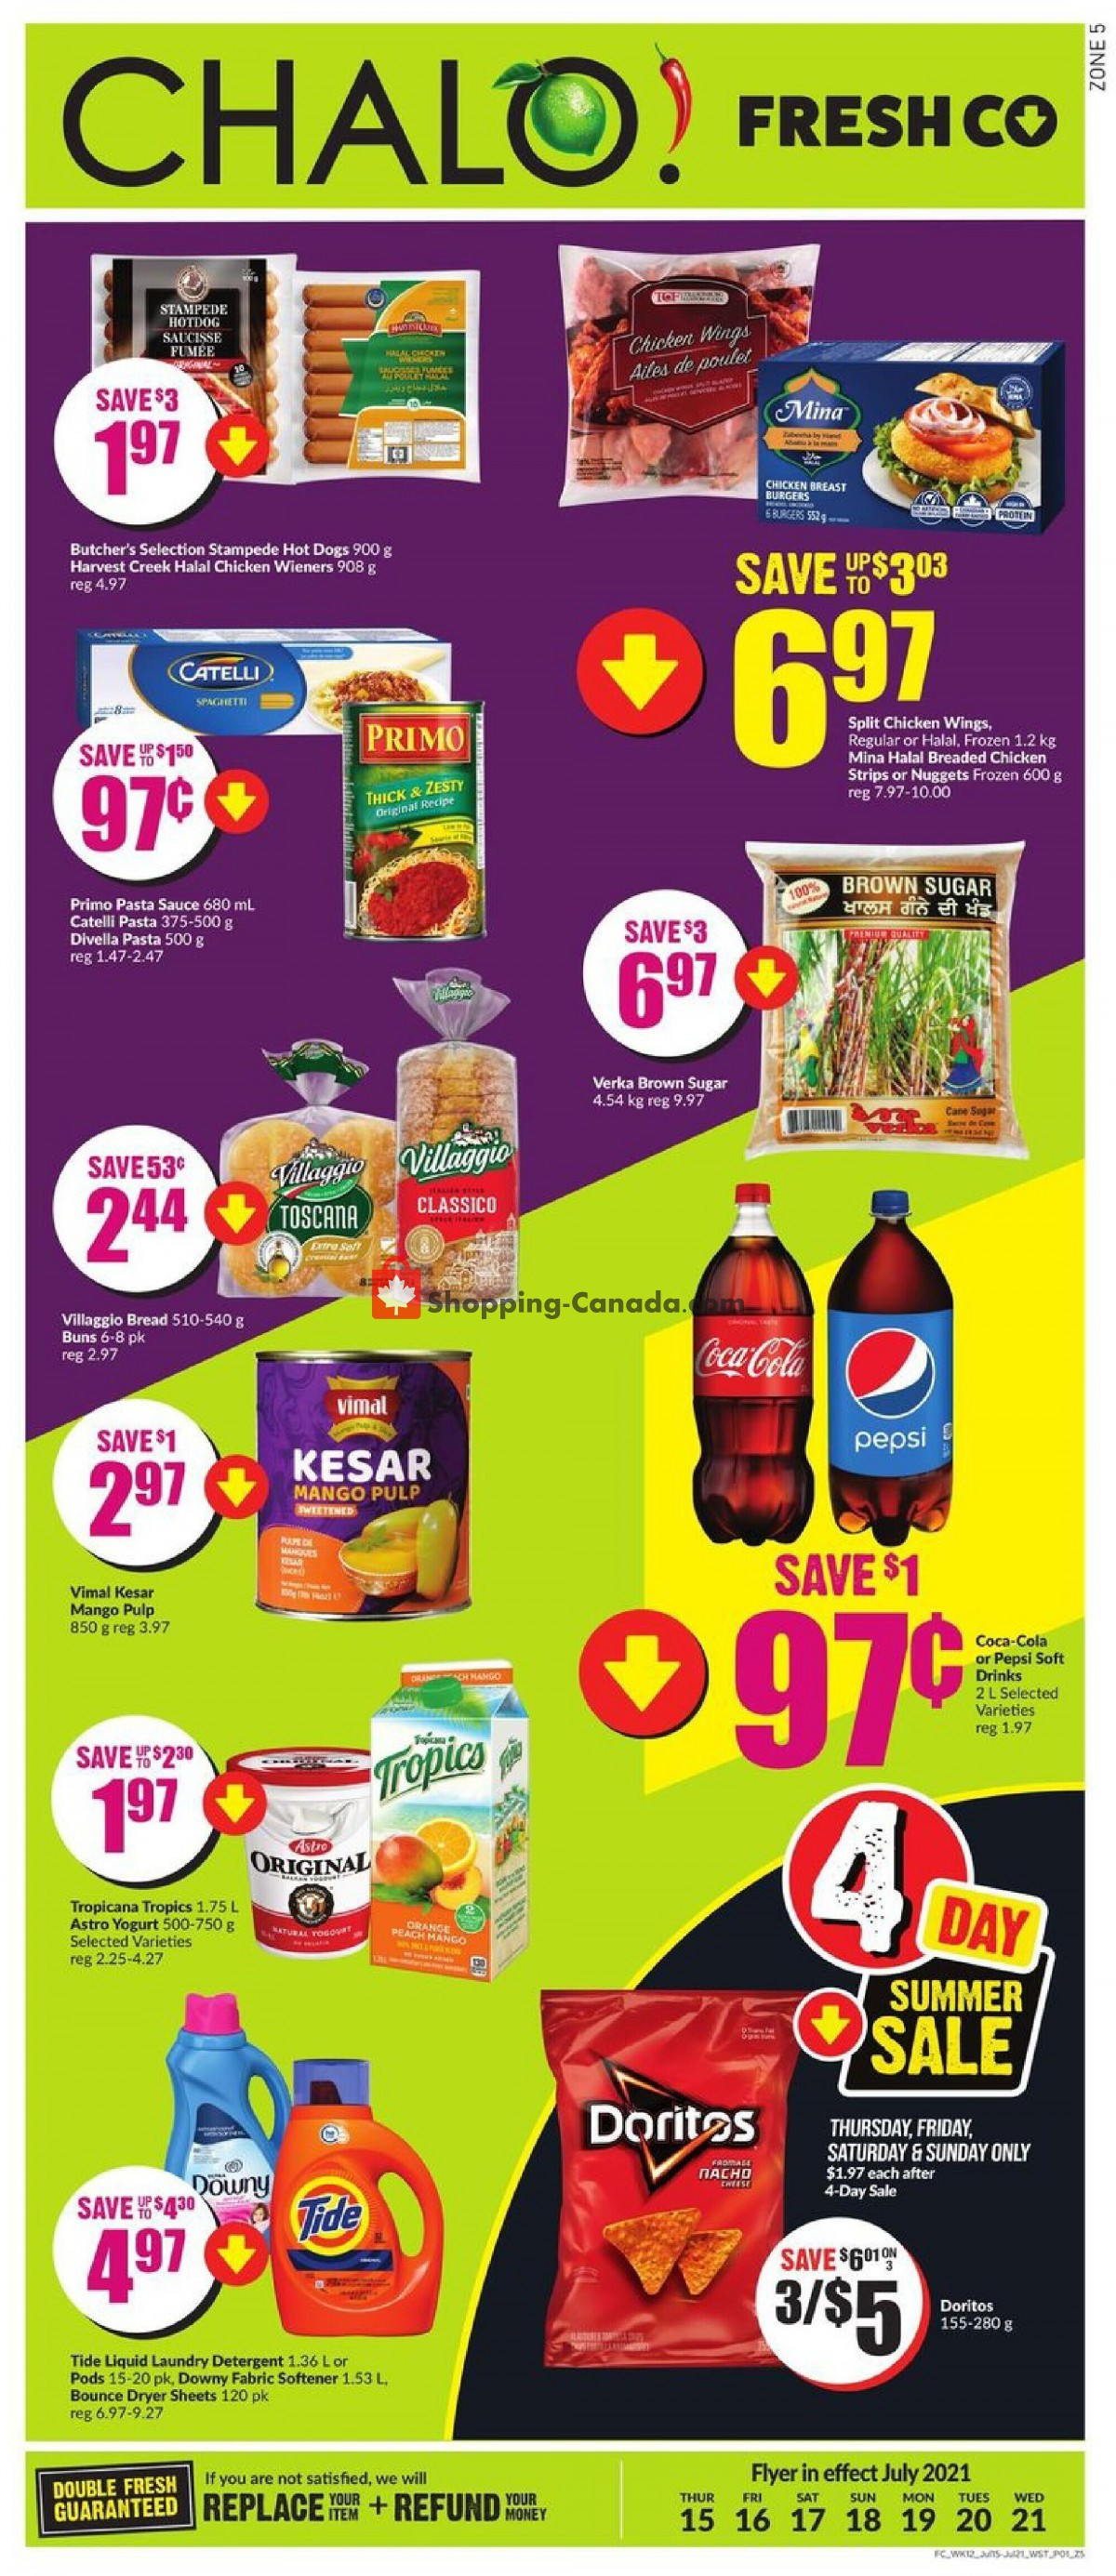 Flyer Chalo FreshCo Canada - from Thursday July 15, 2021 to Wednesday July 21, 2021